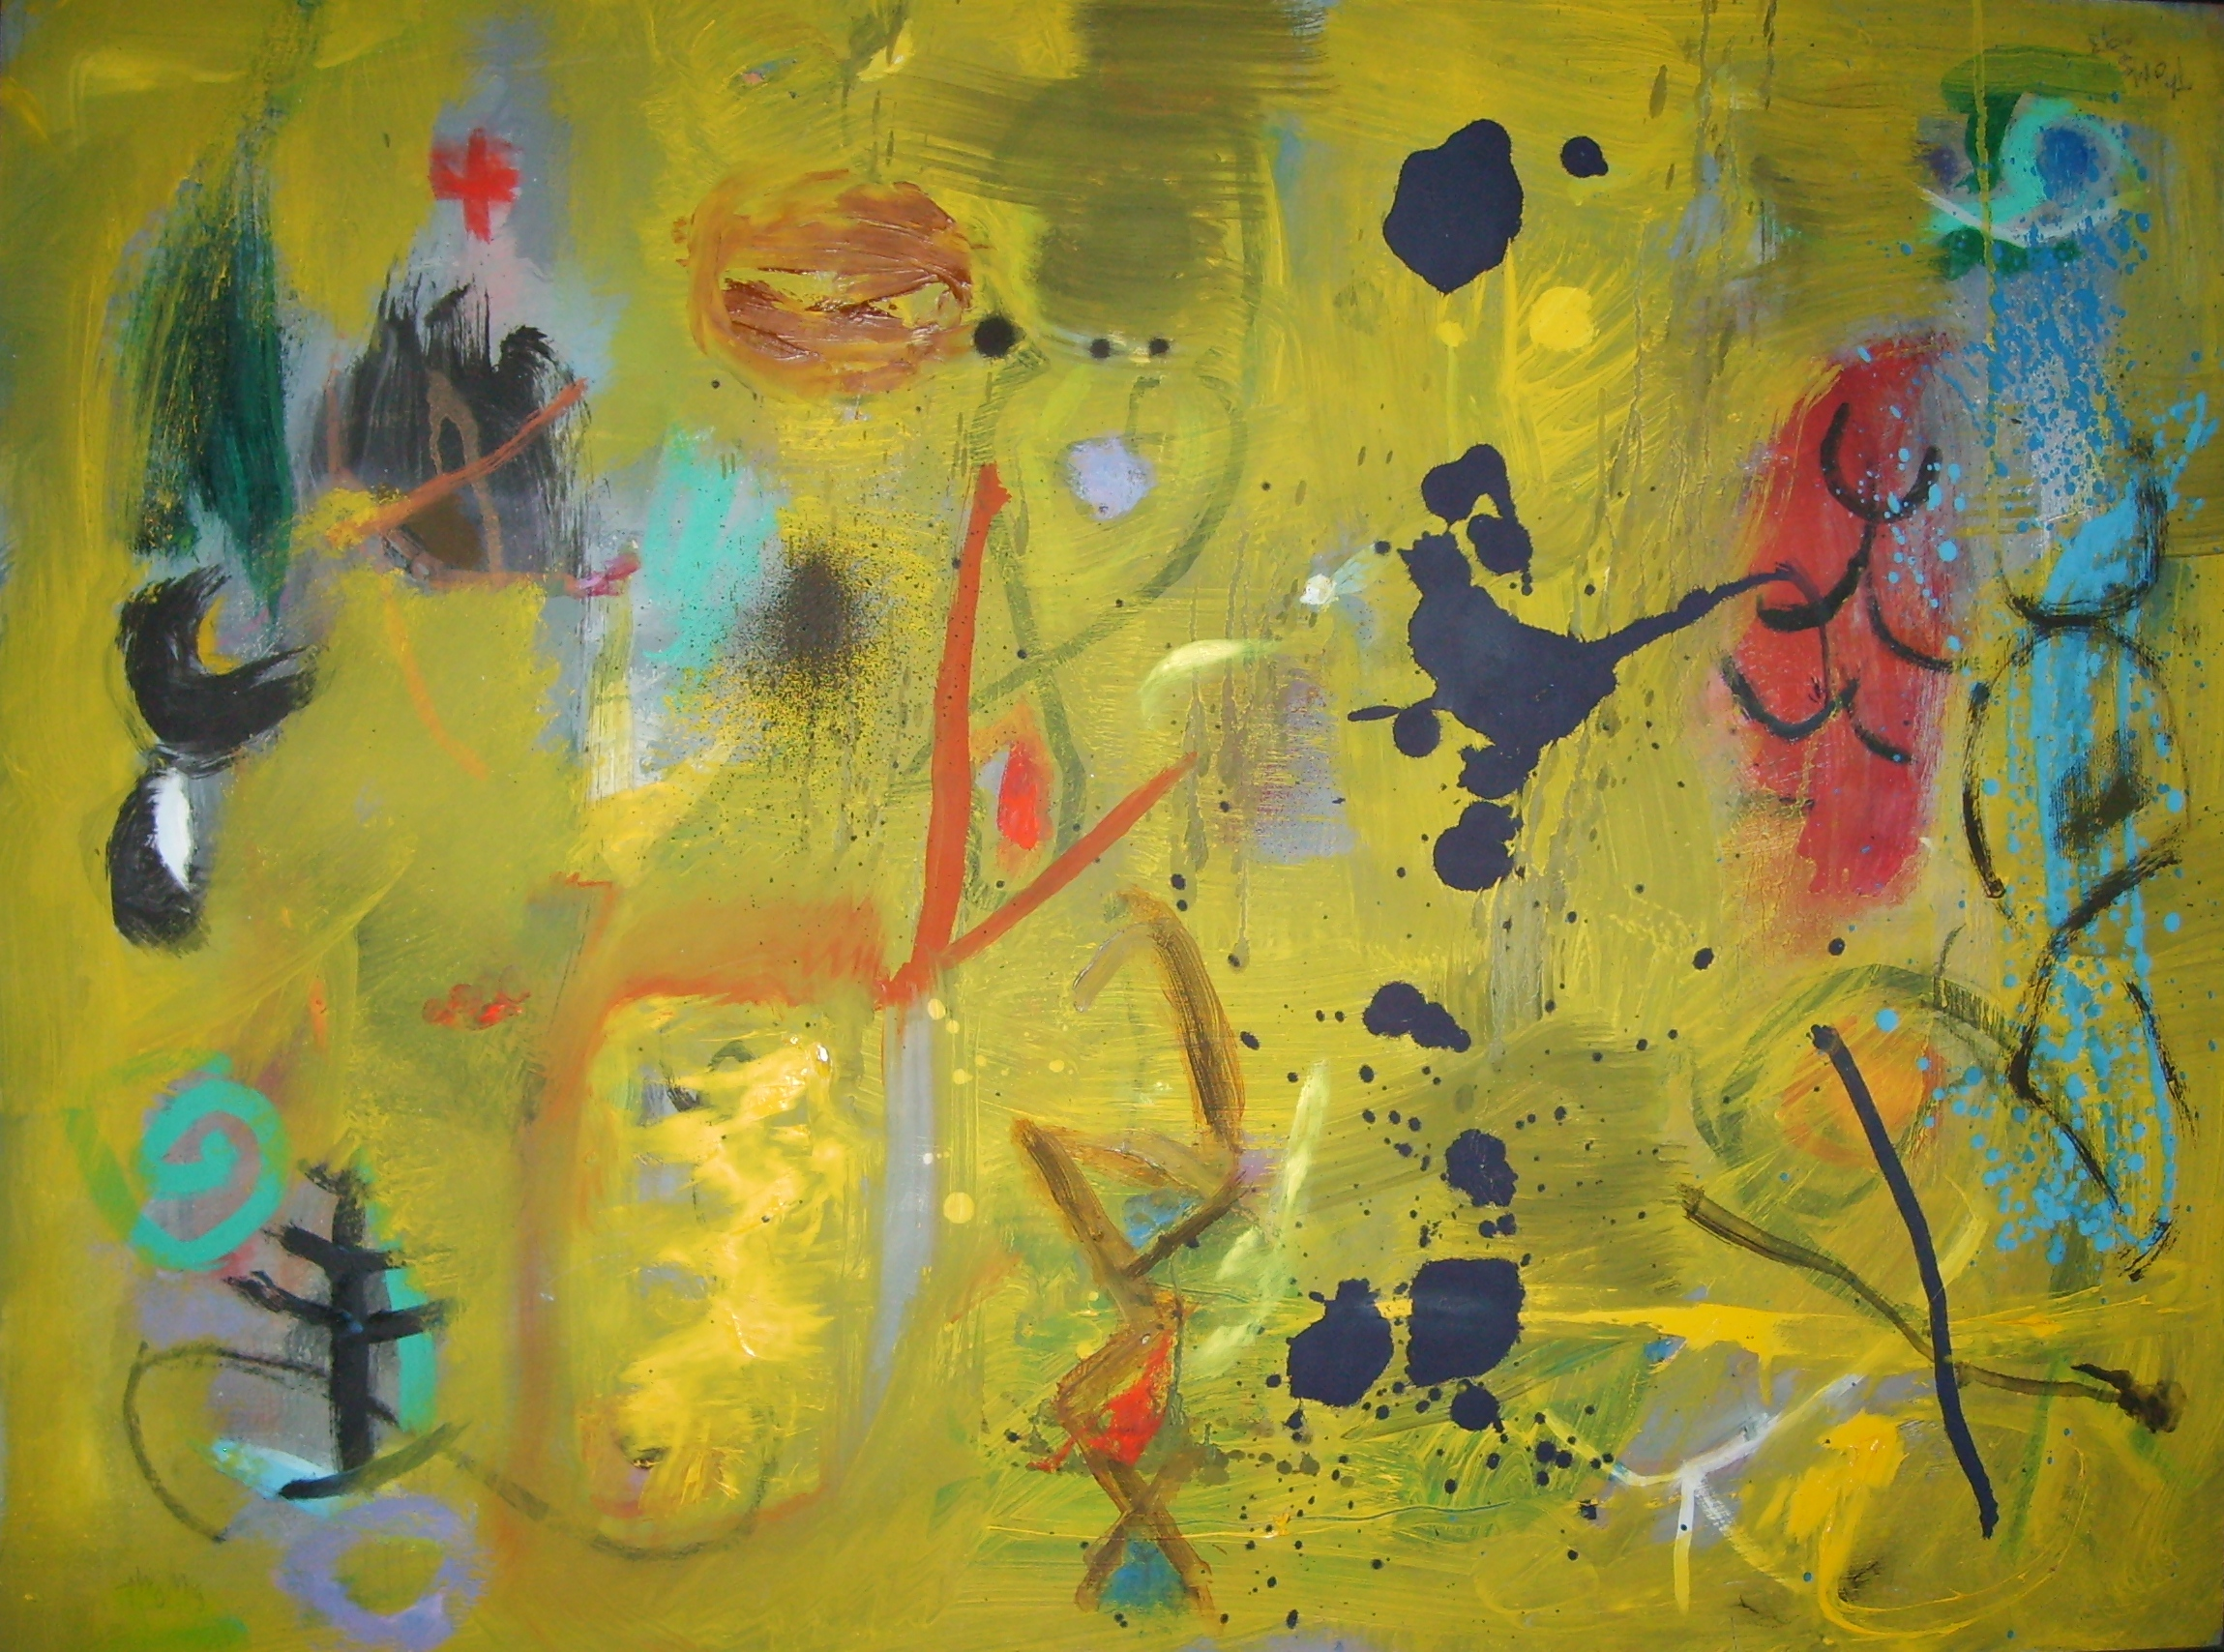 Yellow Ground Dead Woodland 90 x 70cm Oil on board1993